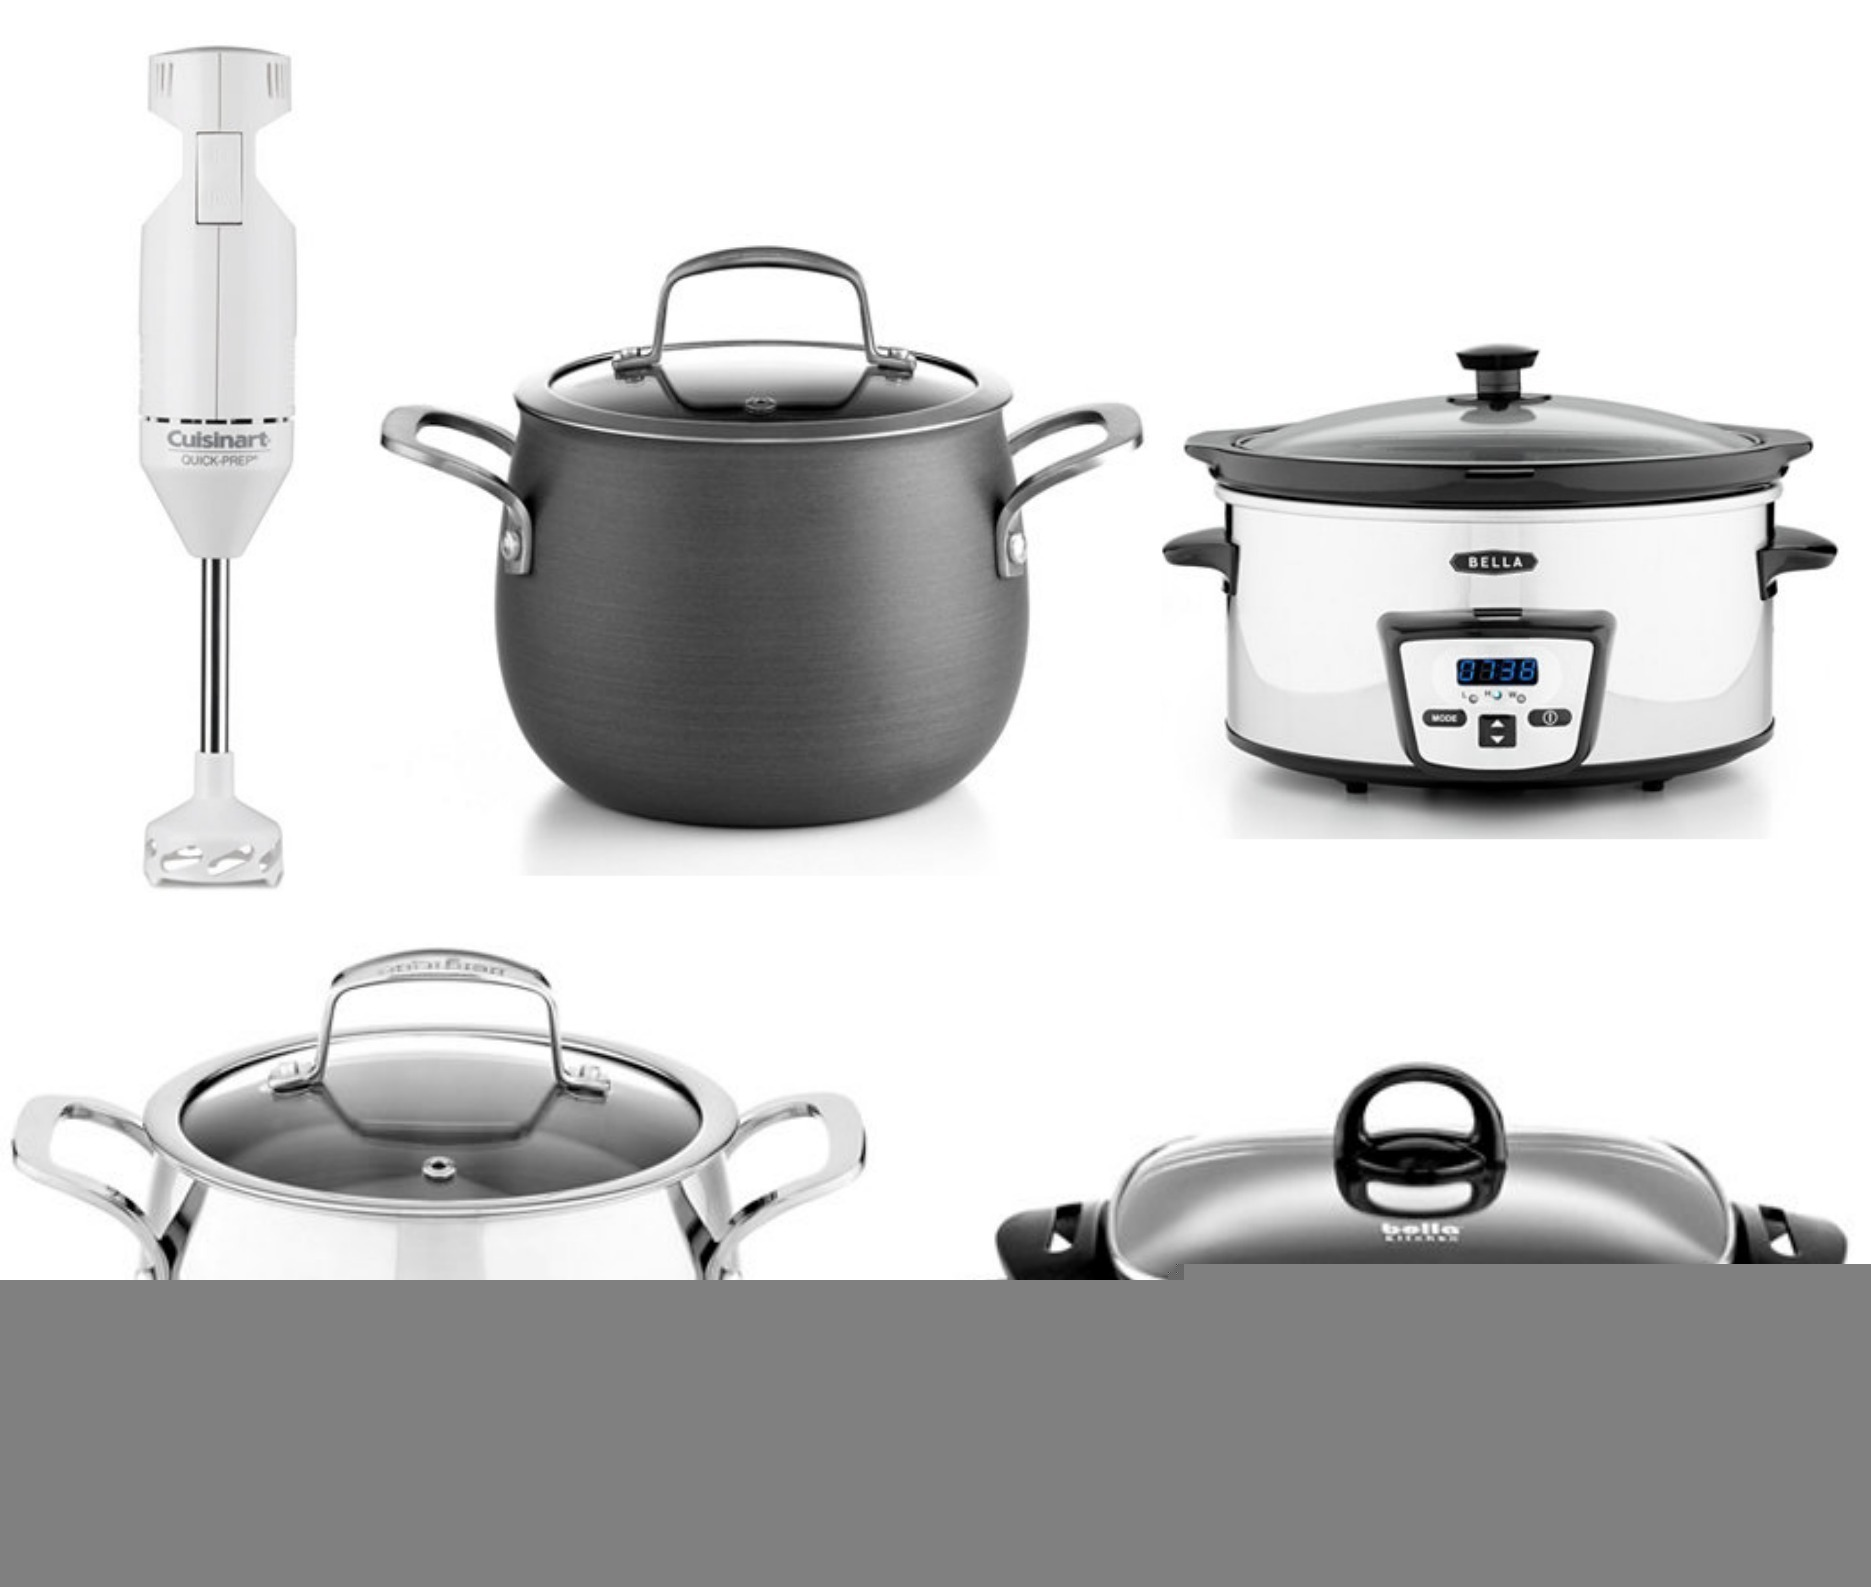 Macy\'s: Small Kitchen Appliances $9.99 after Rebate | The CentsAble ...